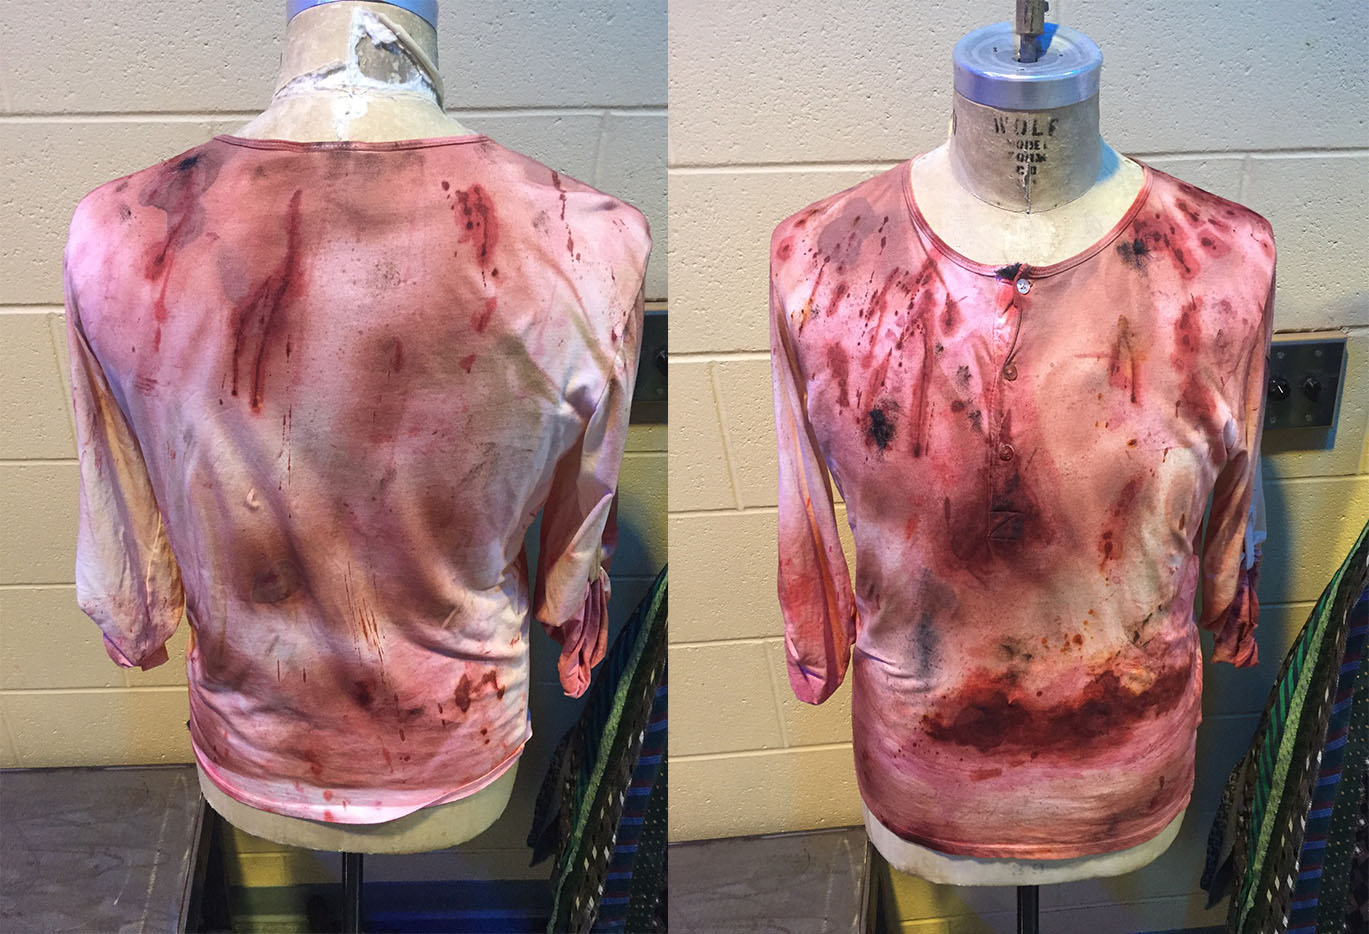 Bloodied shirt distressed for Berserker. 2016